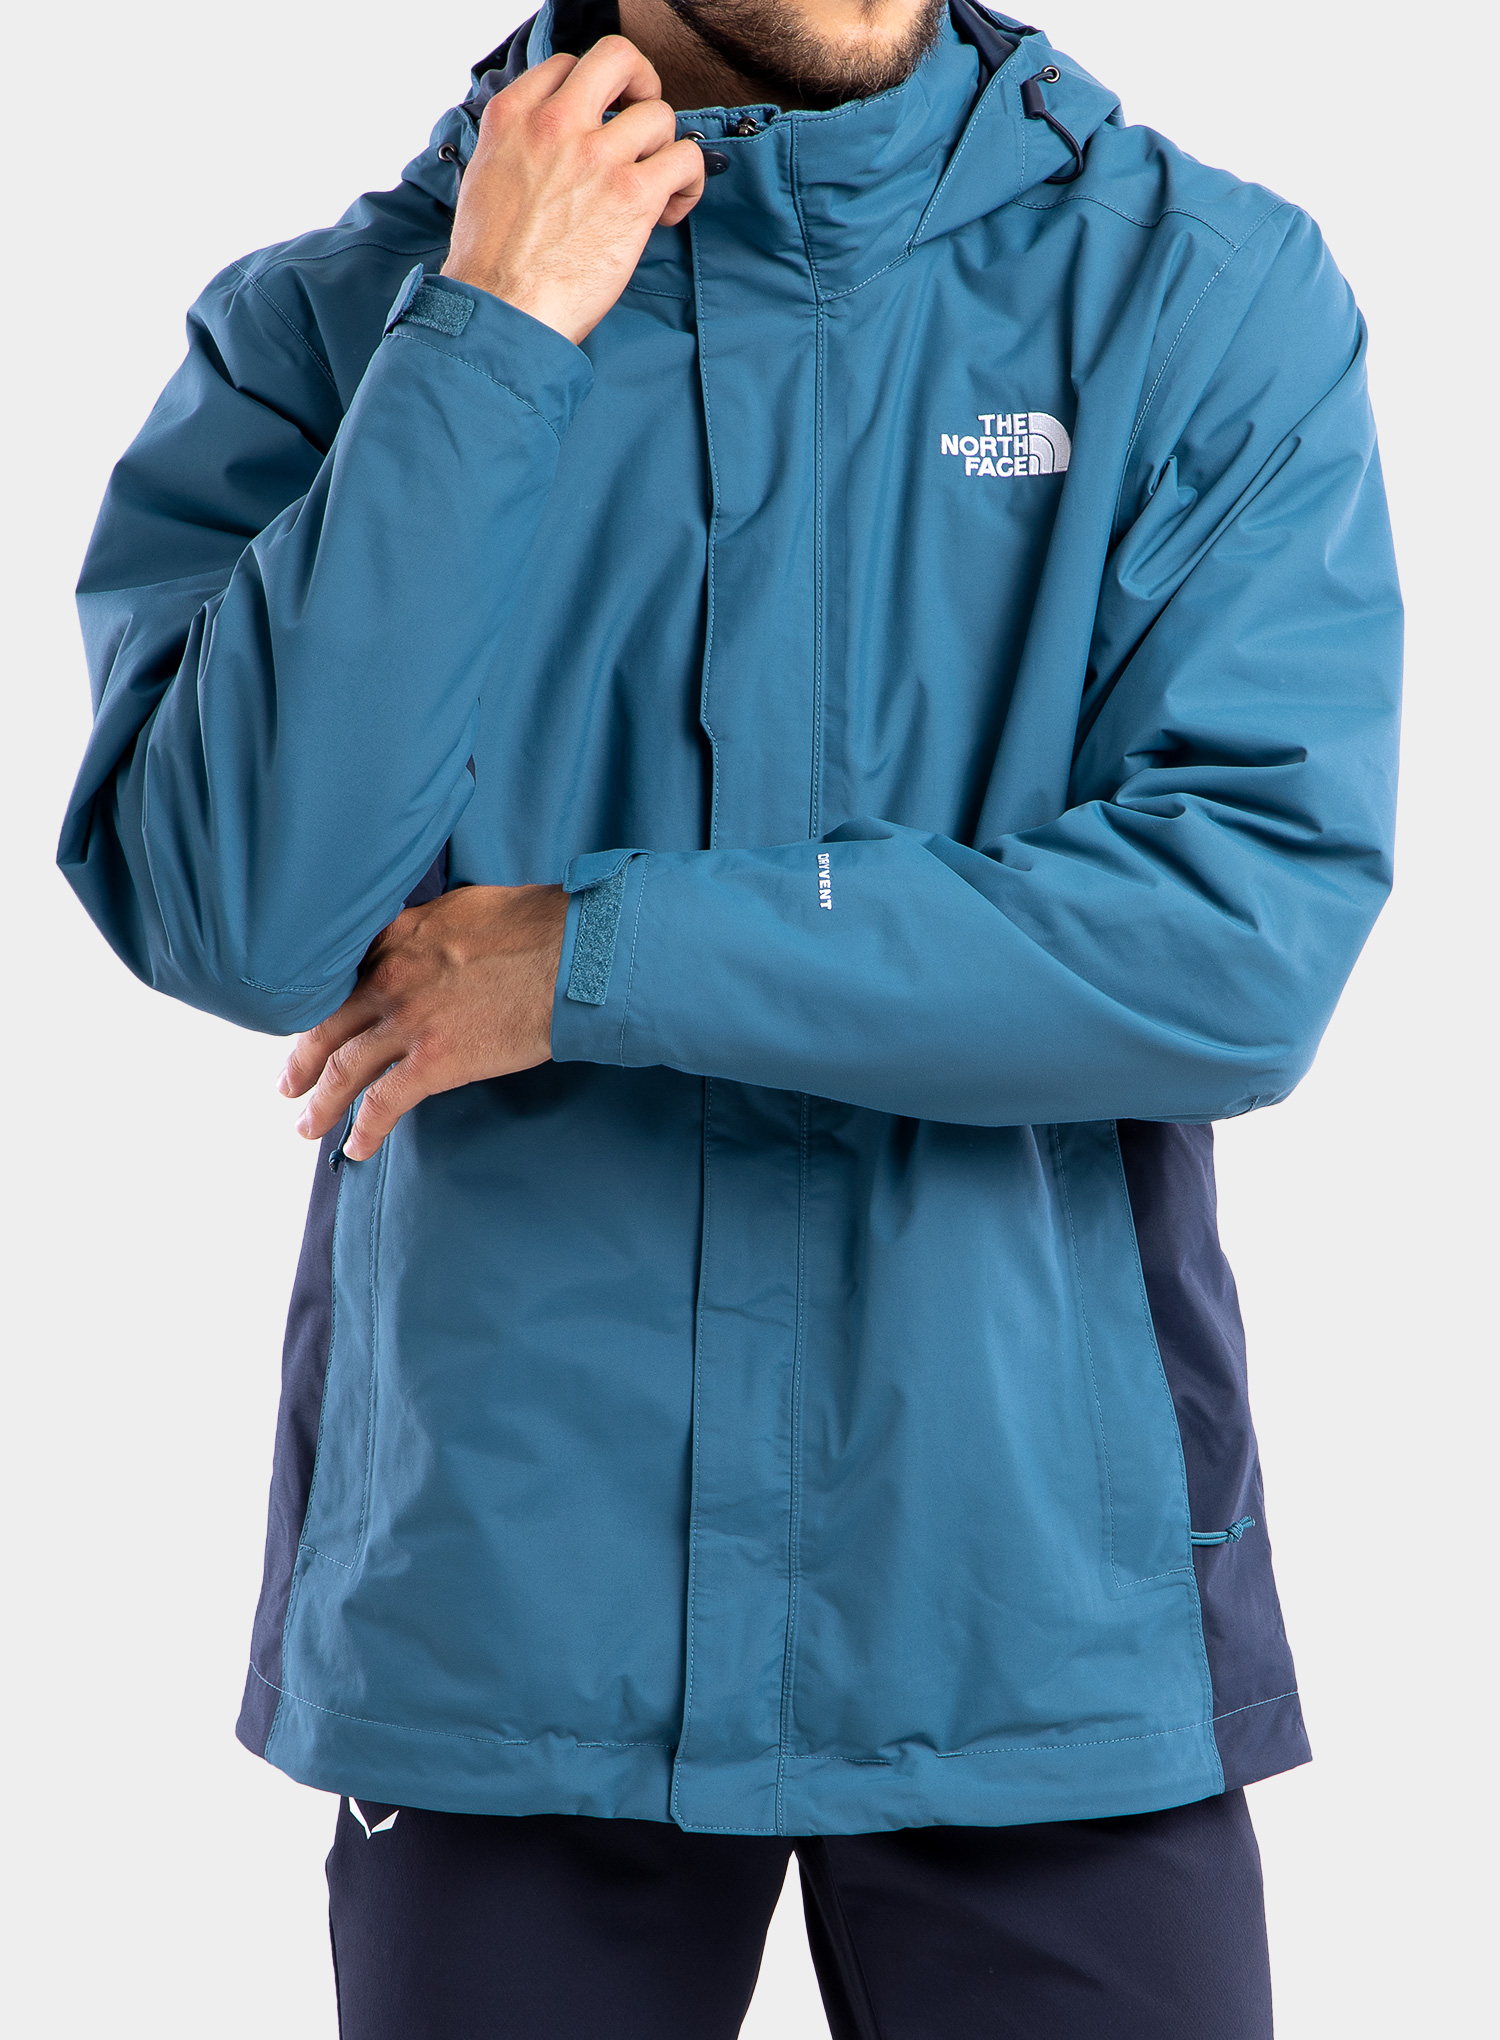 Kurtka The North Face Evolution II Triclimate - blue/navy - zdjęcie nr. 1